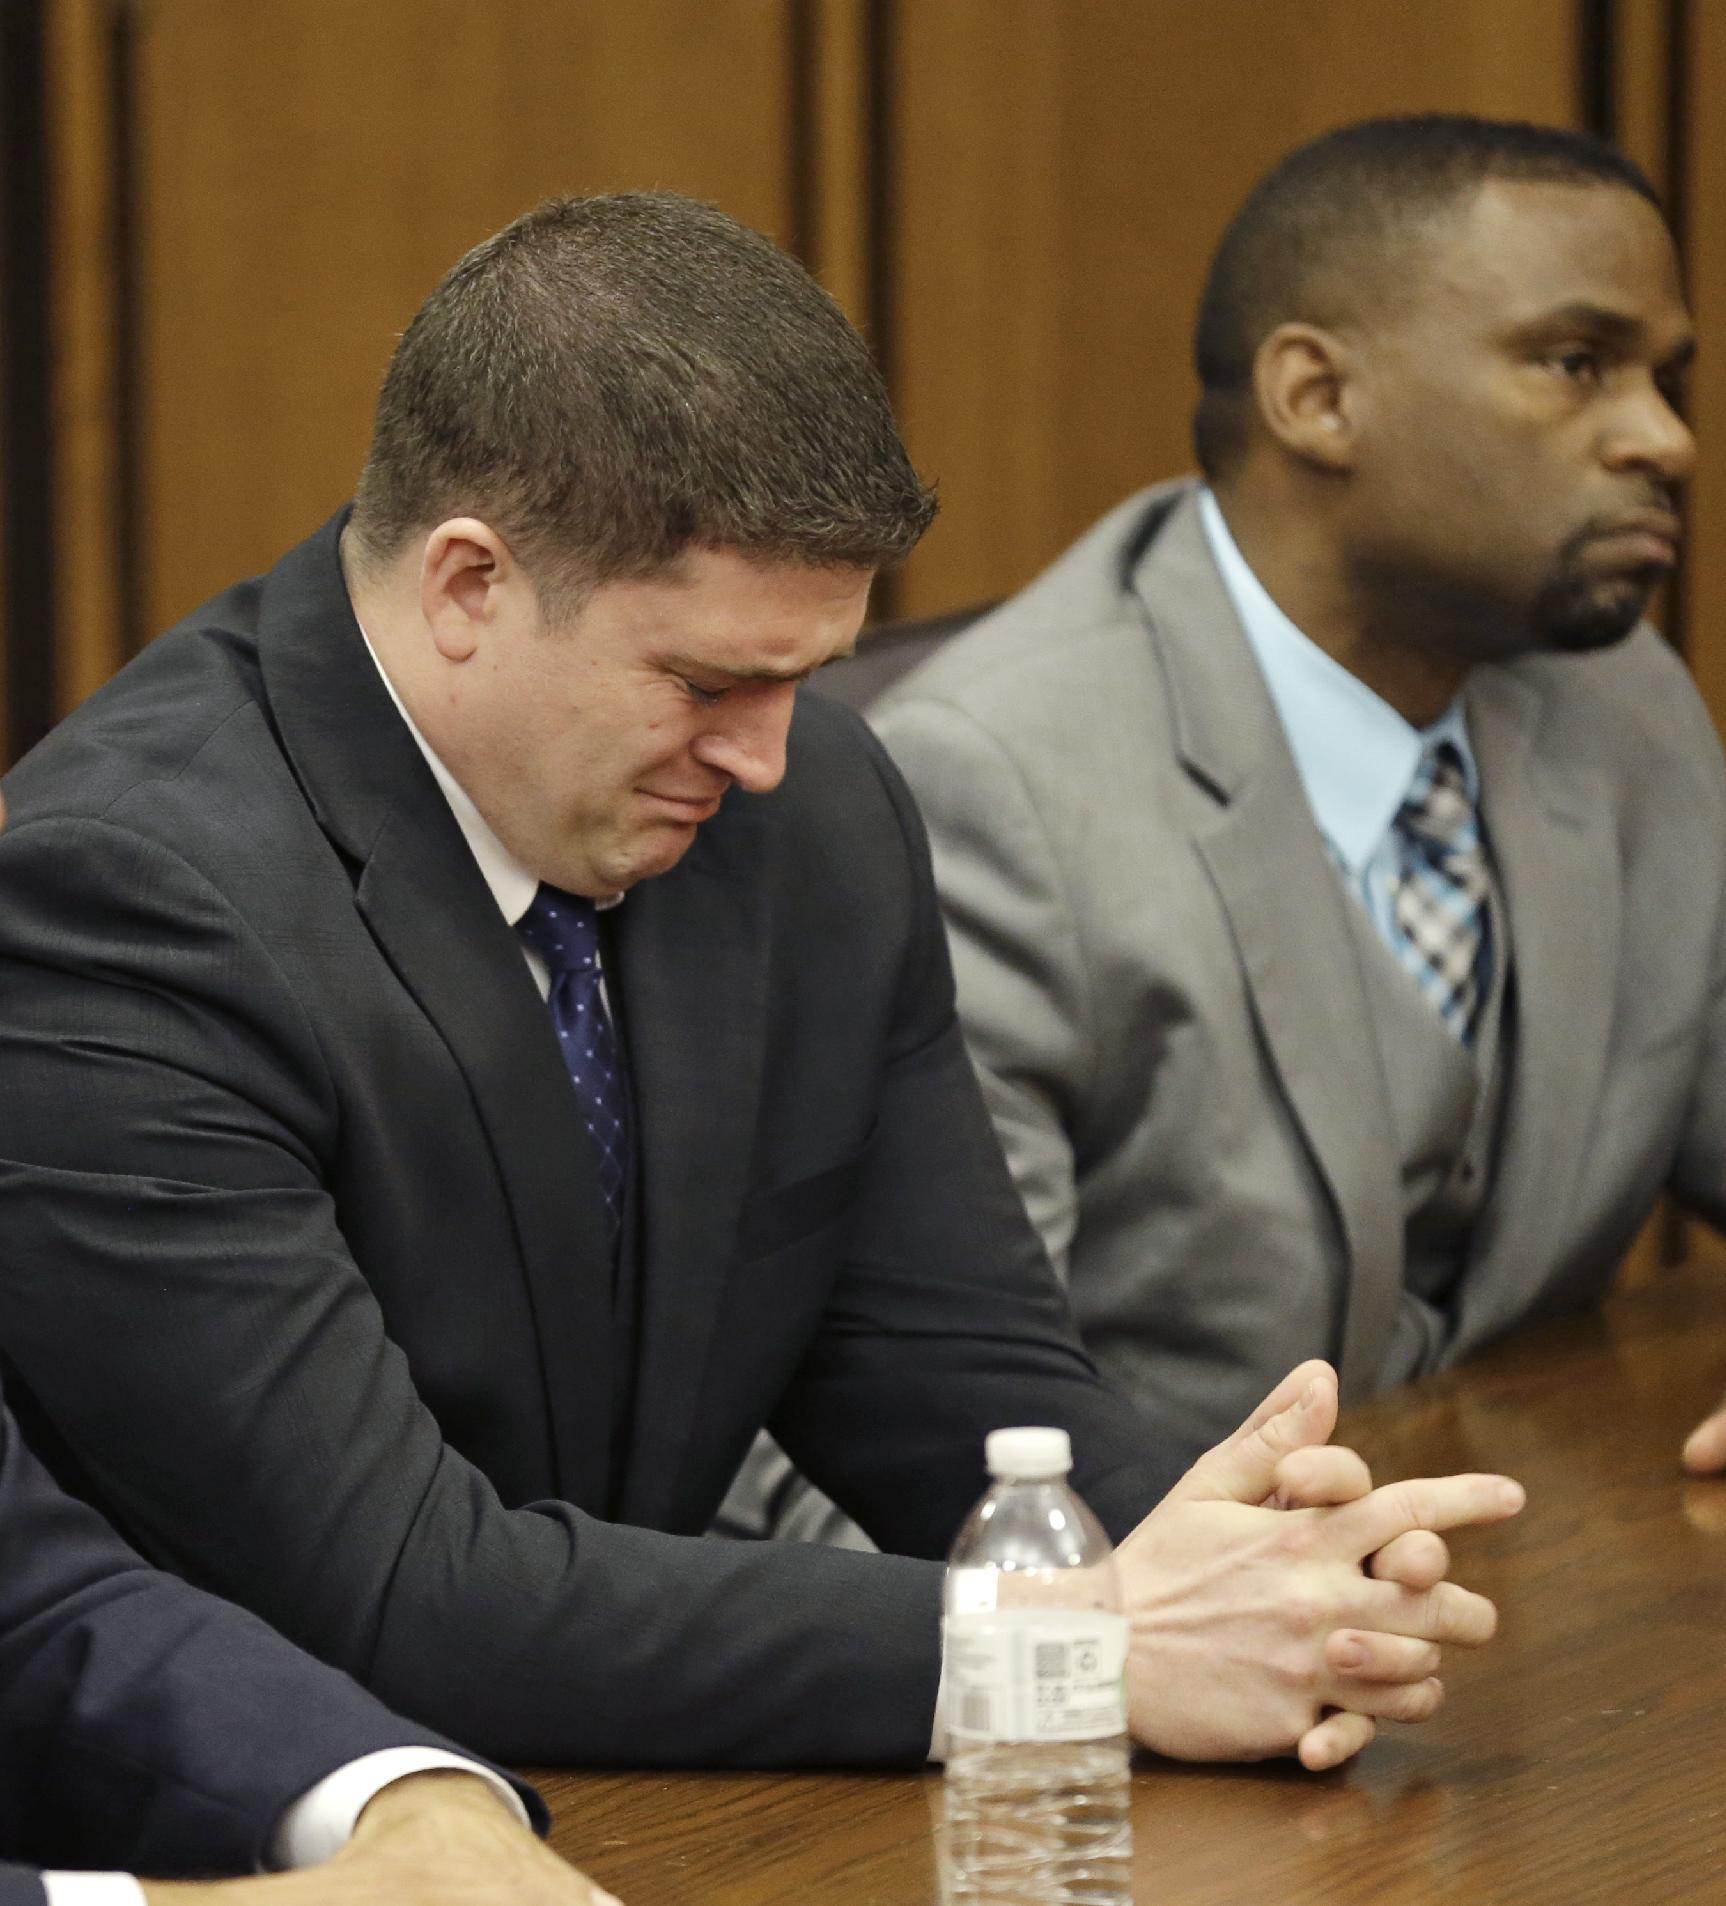 Ohio patrolman acquitted in 2 deaths amid 137-shot barrage